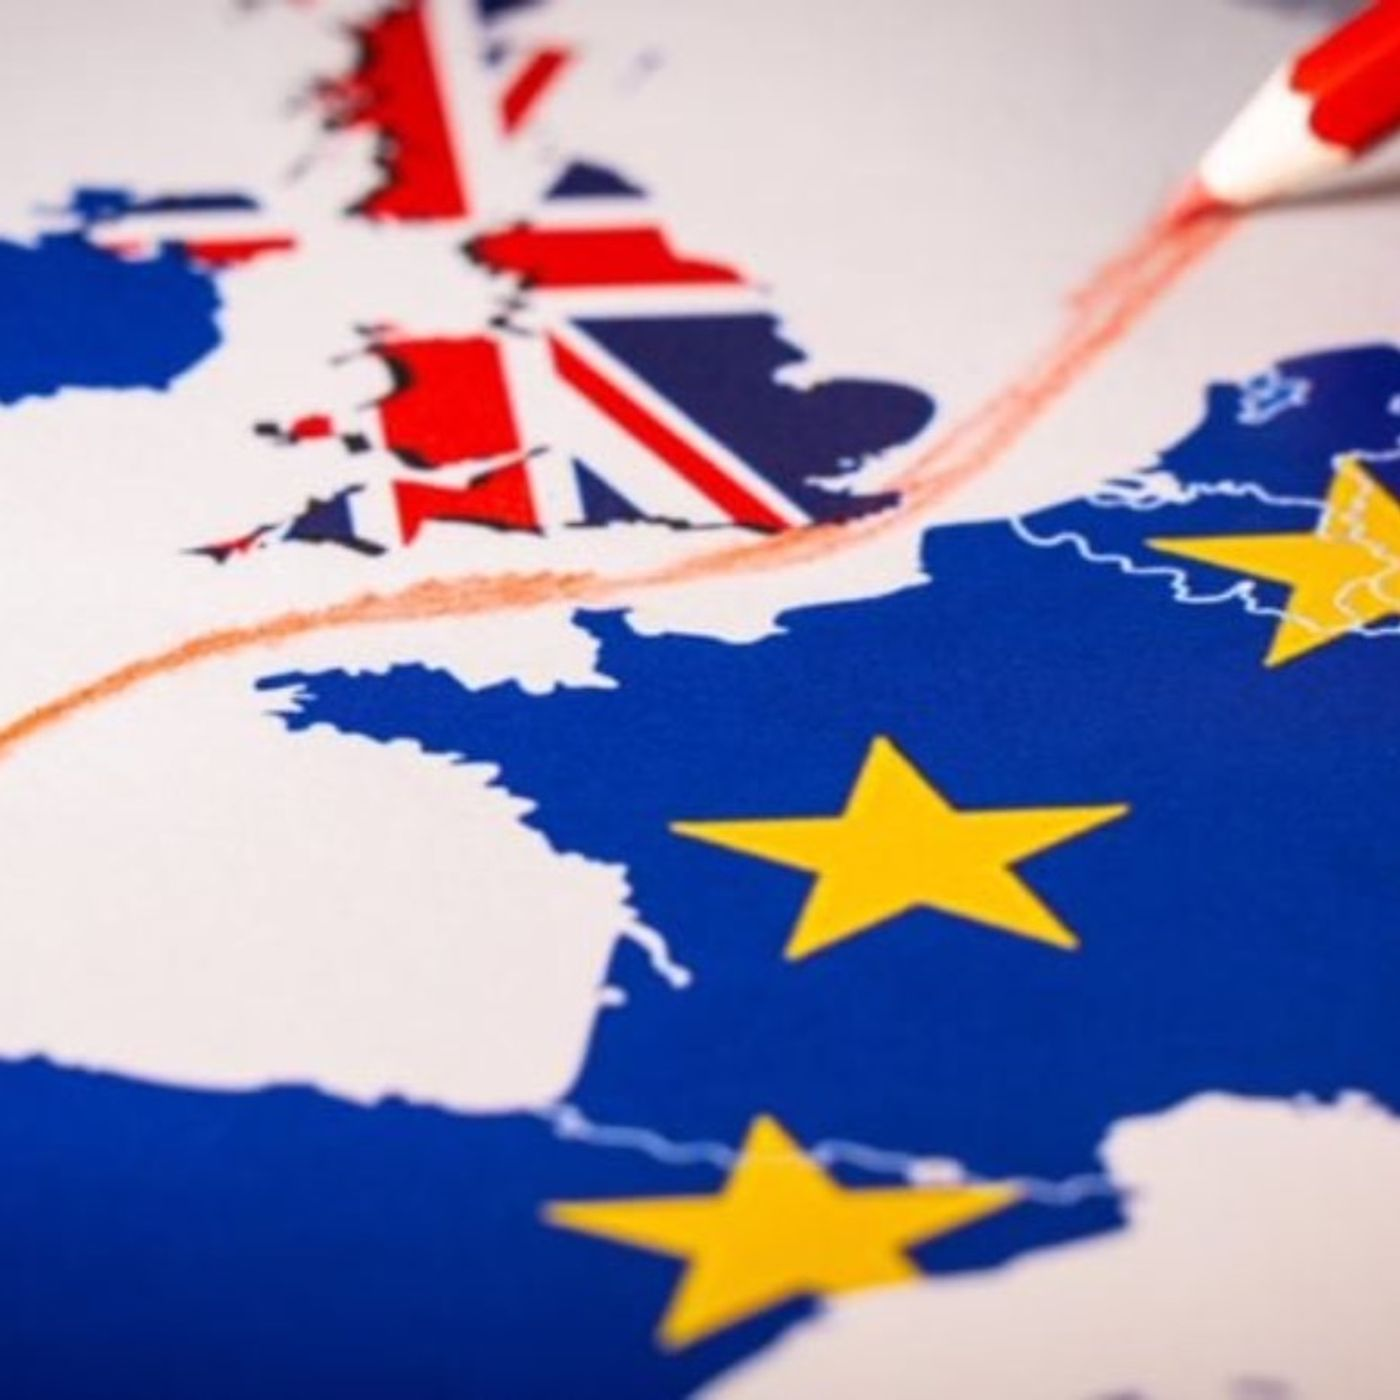 POLICY AND PRACTICE - European Perspectives on Brexit - not a Love Story